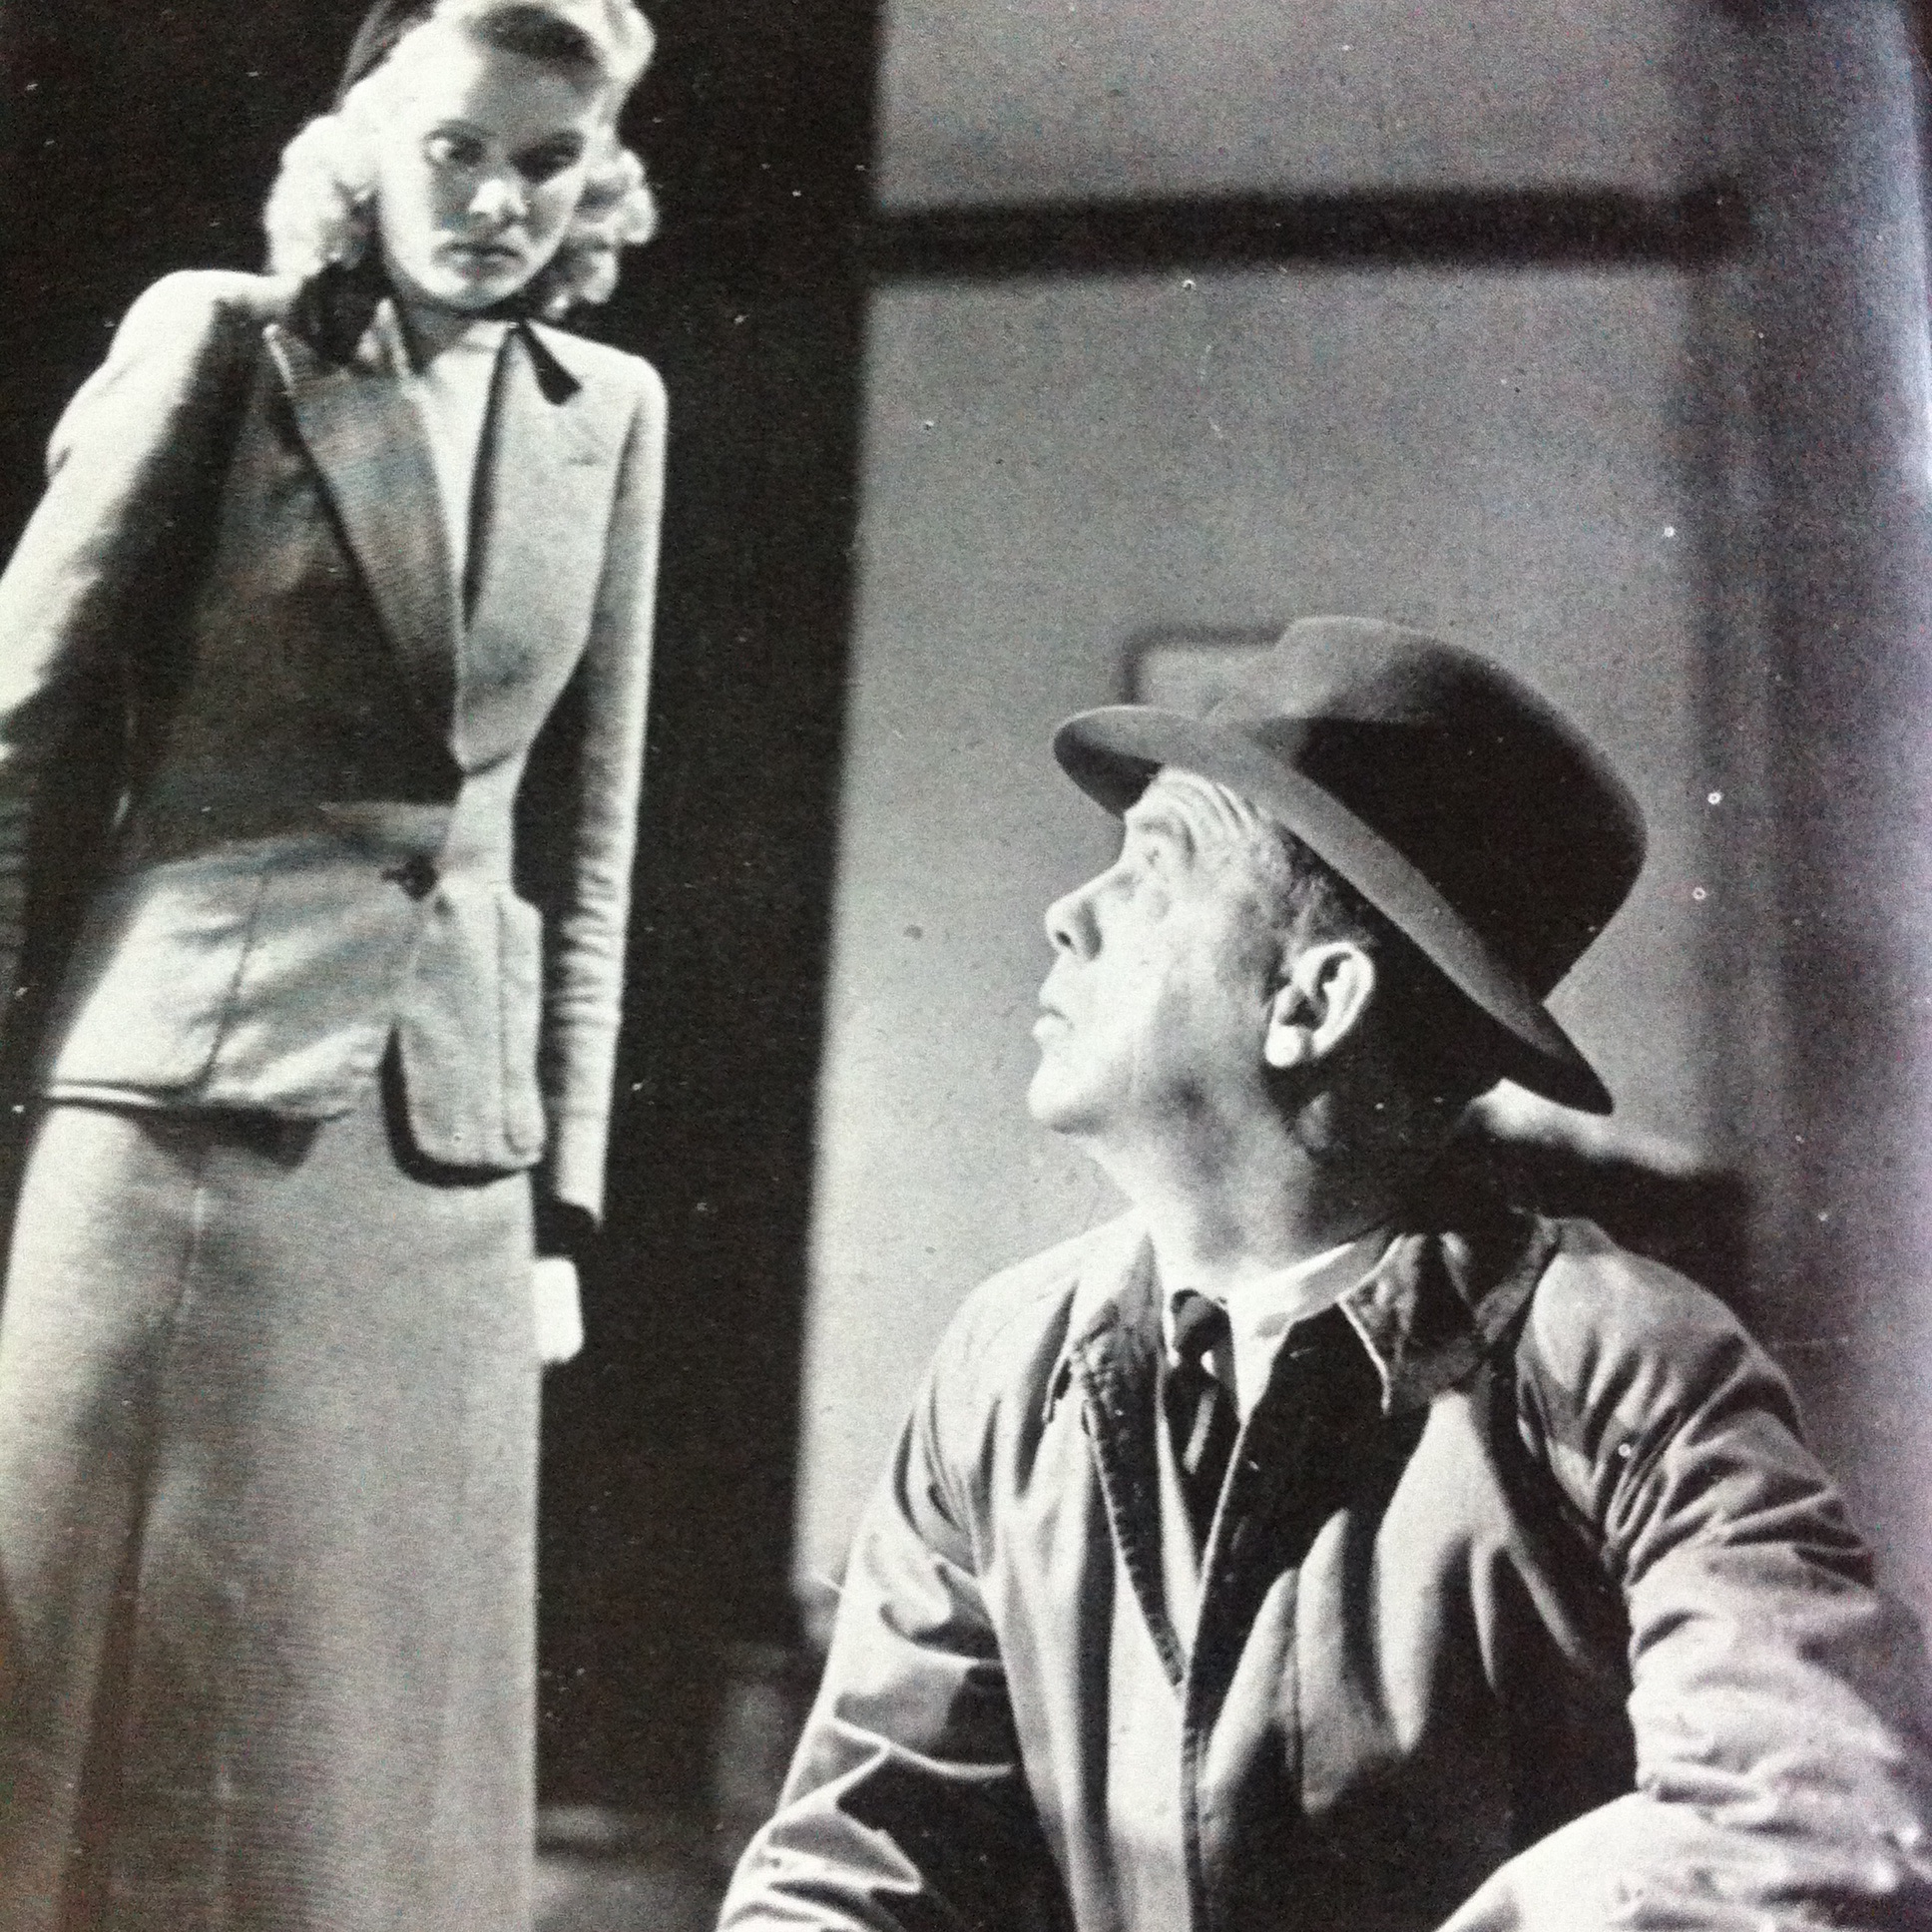 Mervyn Johns and Nova Pilbeam in The Next of Kin (1942)